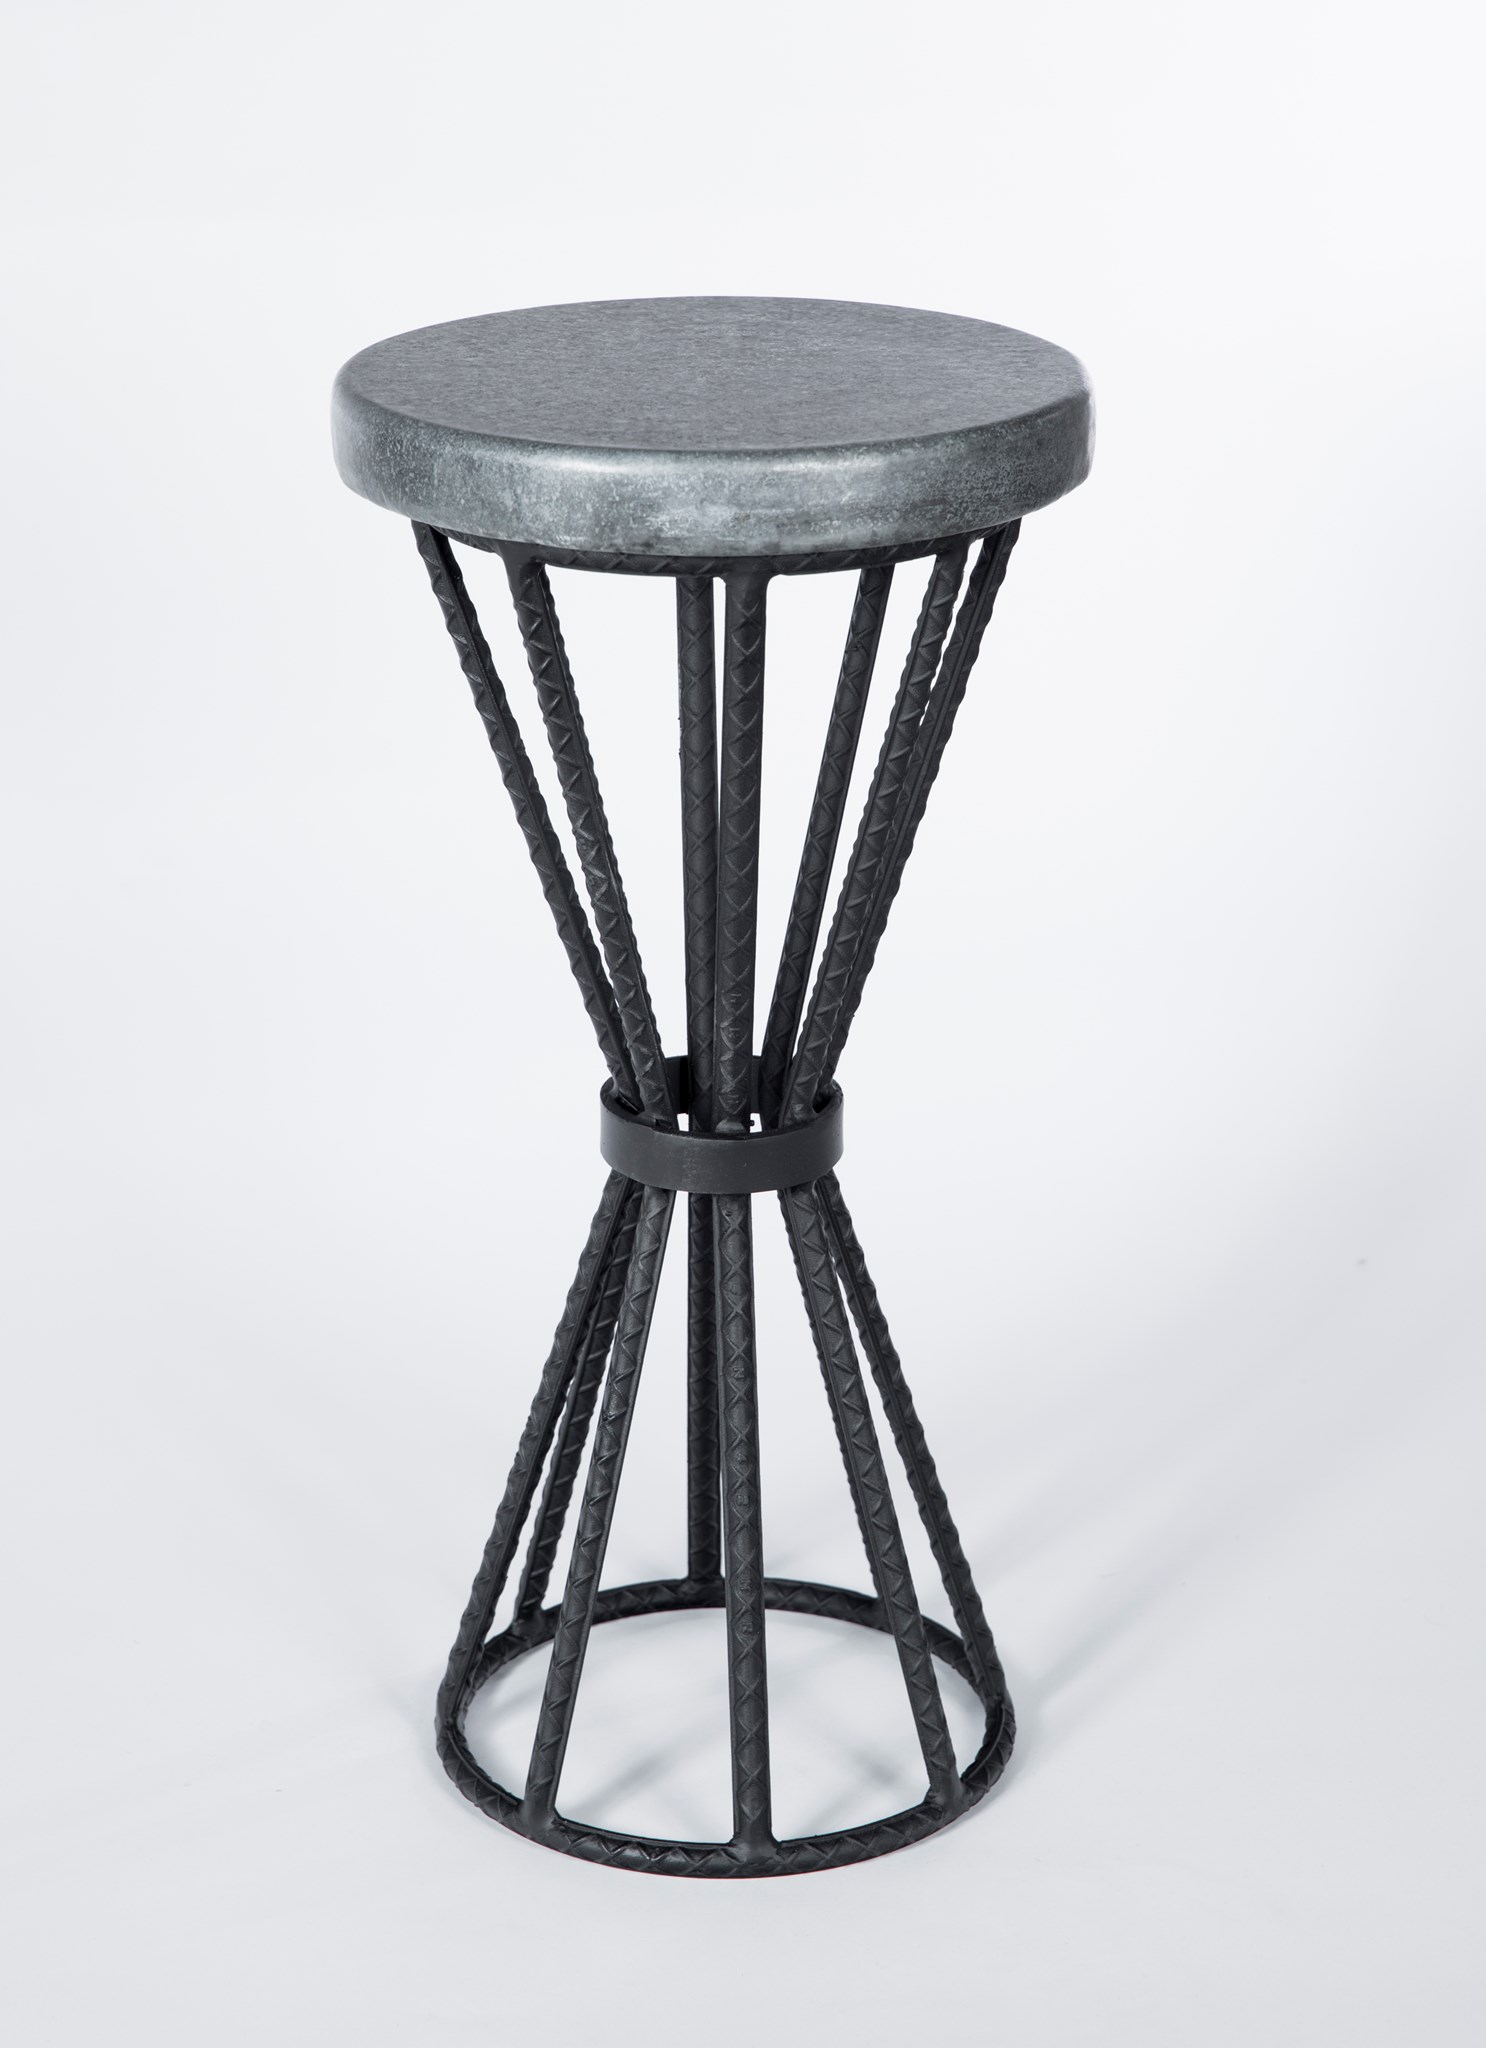 axel accent table rebar with round hammered zinc top boulevard urban living unfinished base ikea wooden storage box lid fire pit and chairs slimline console grey marble dining